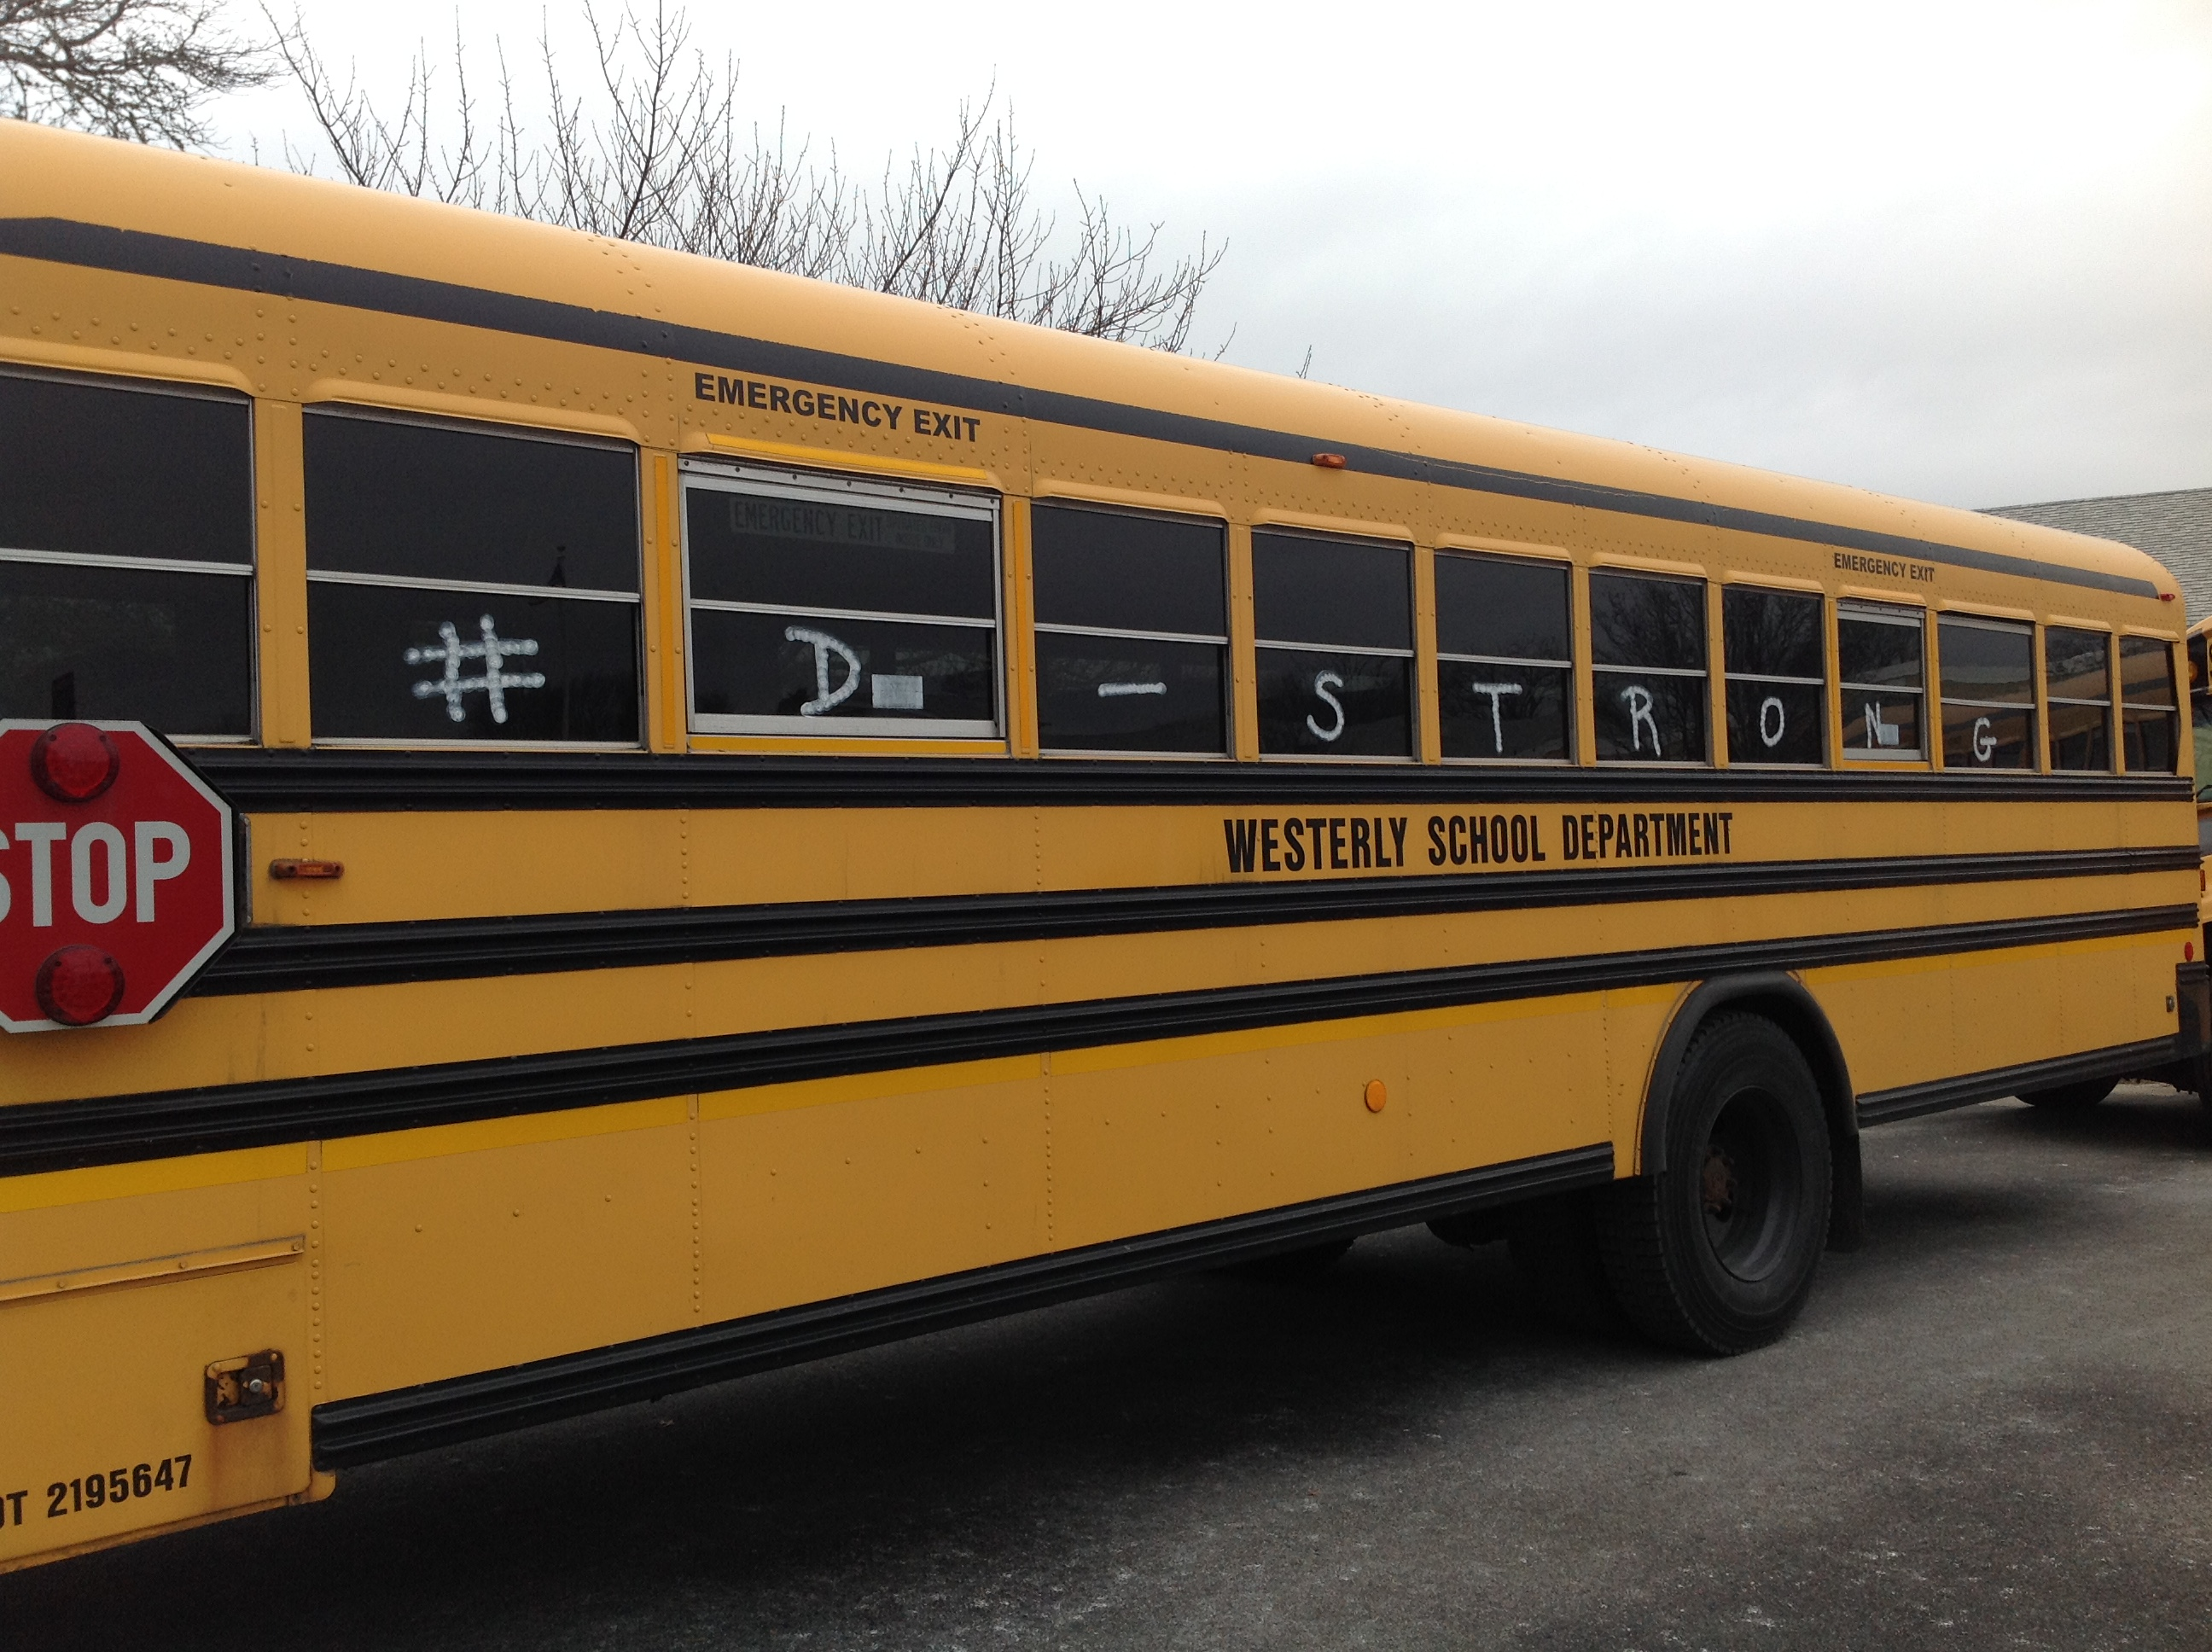 DStrong Bus